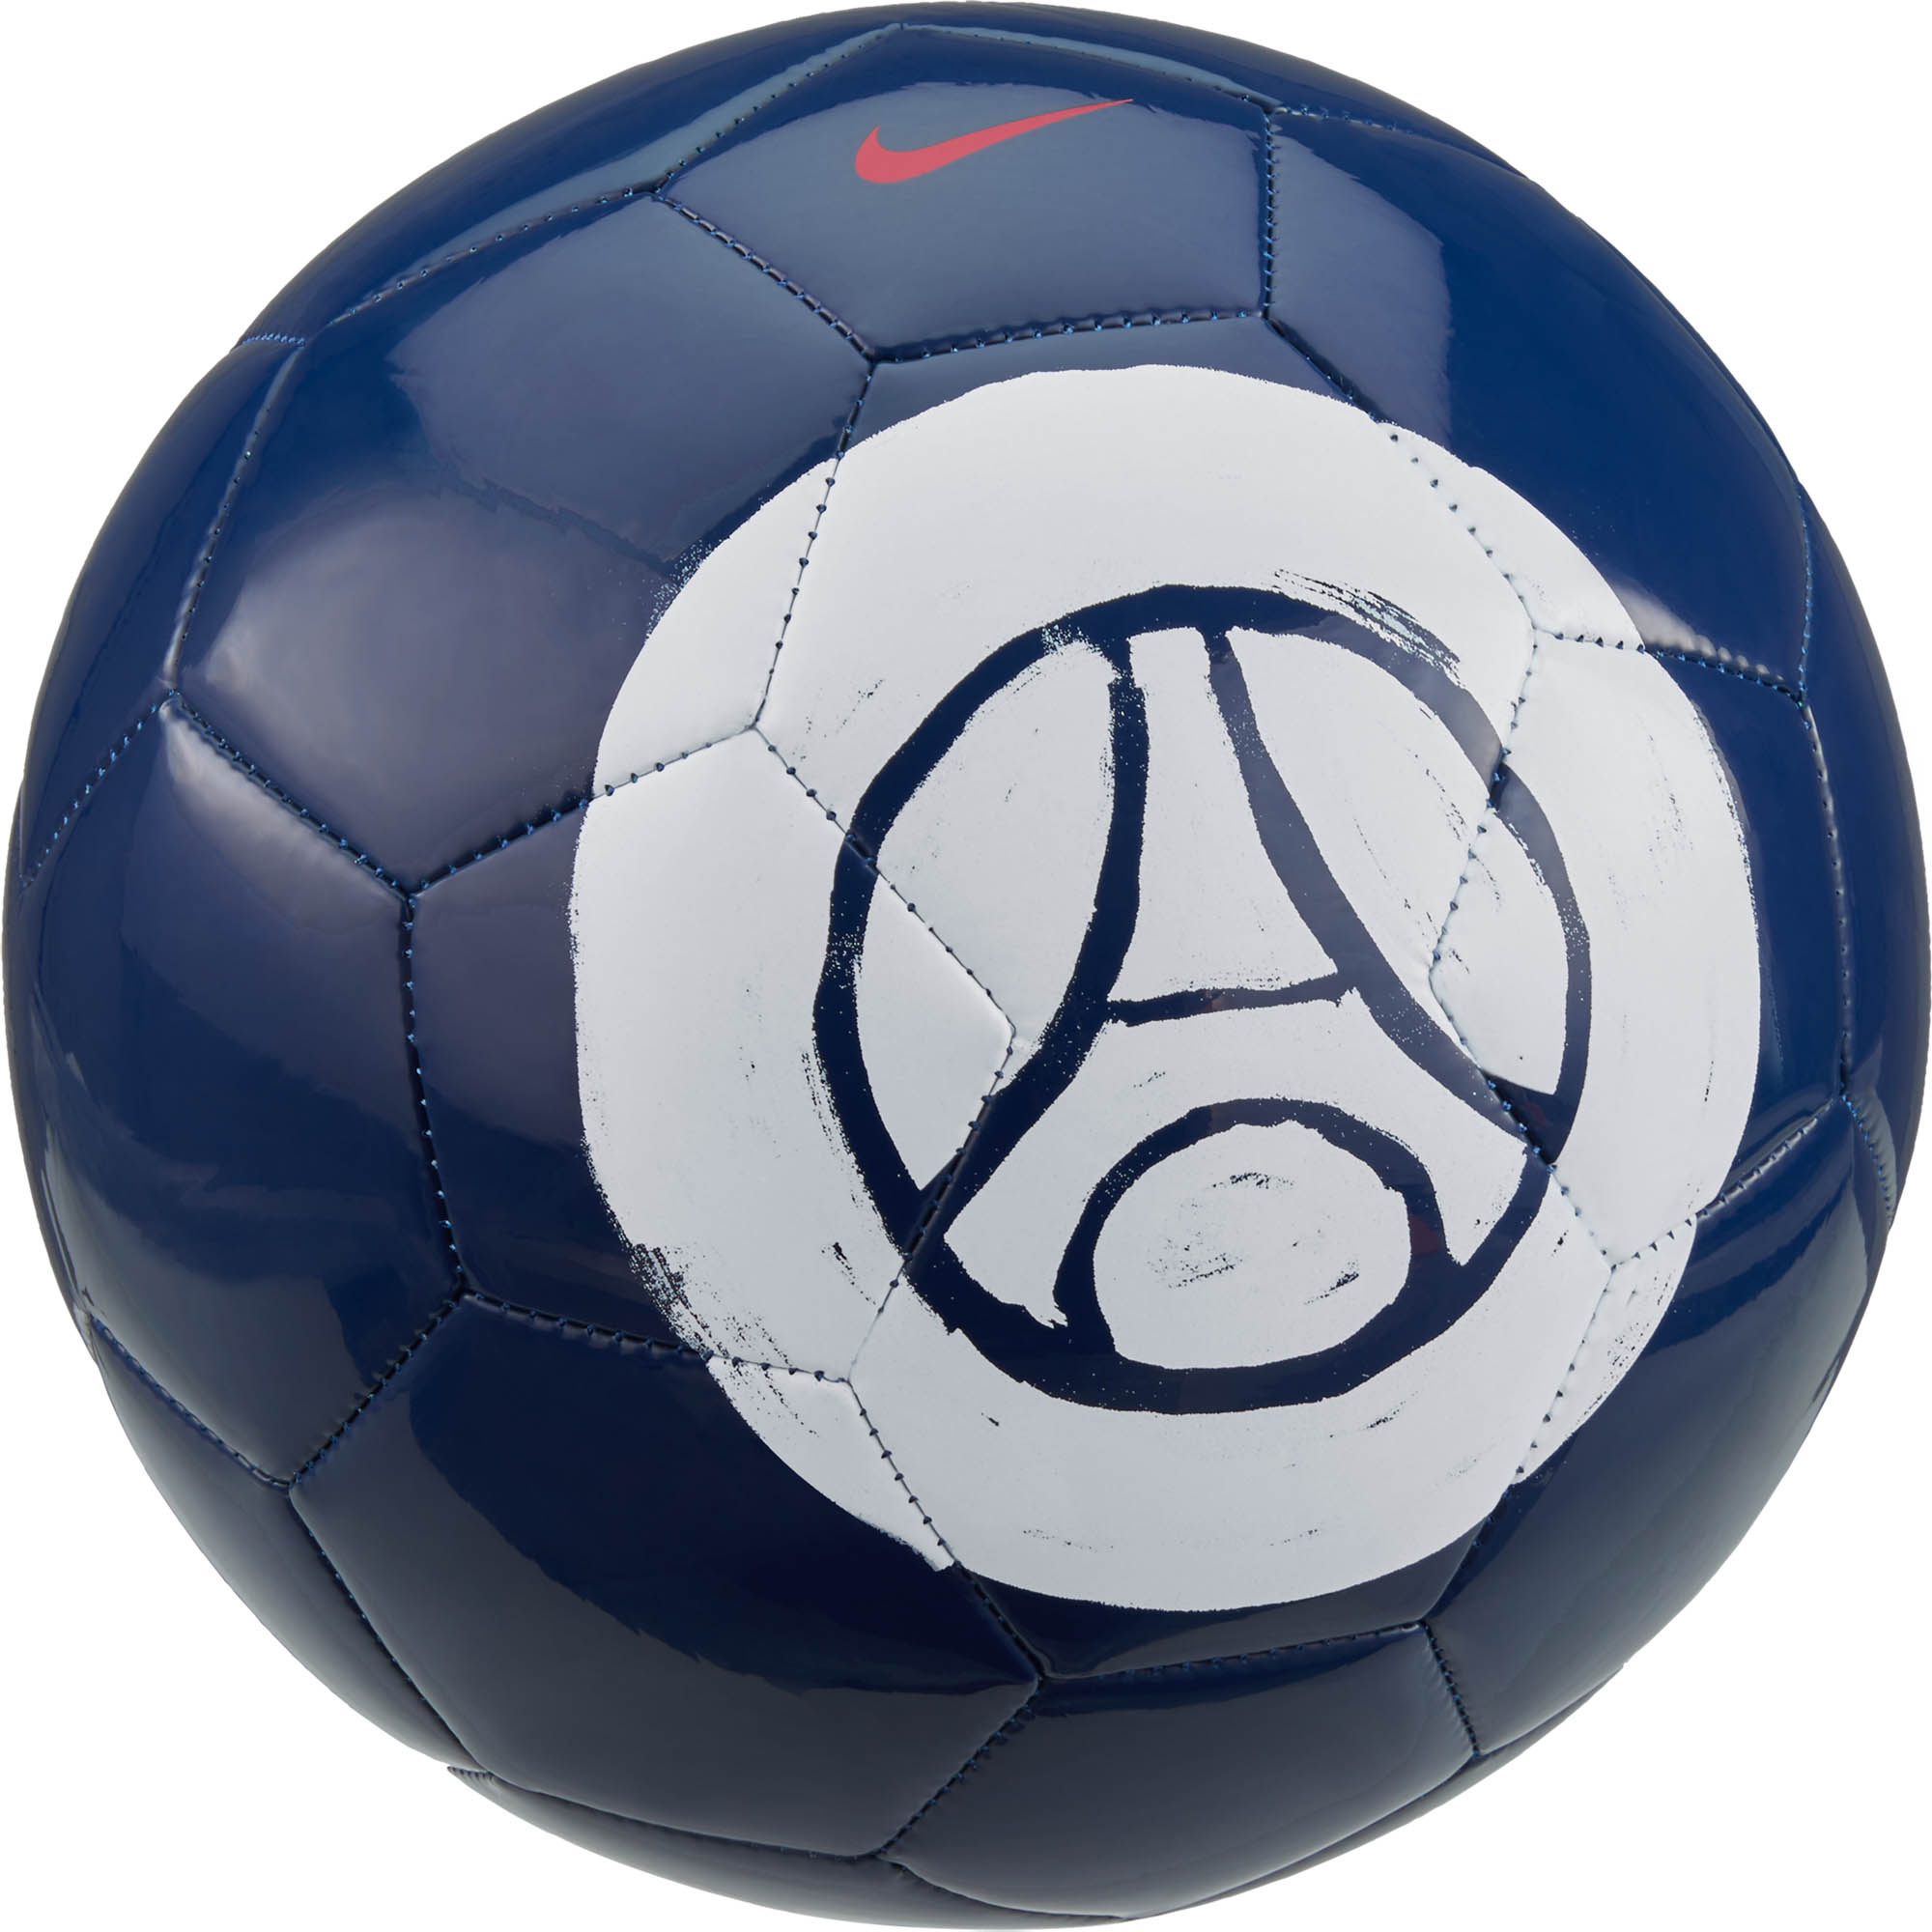 newest f5b06 540b9 Nike PSG Supporters Soccer Ball – Midnight Navy